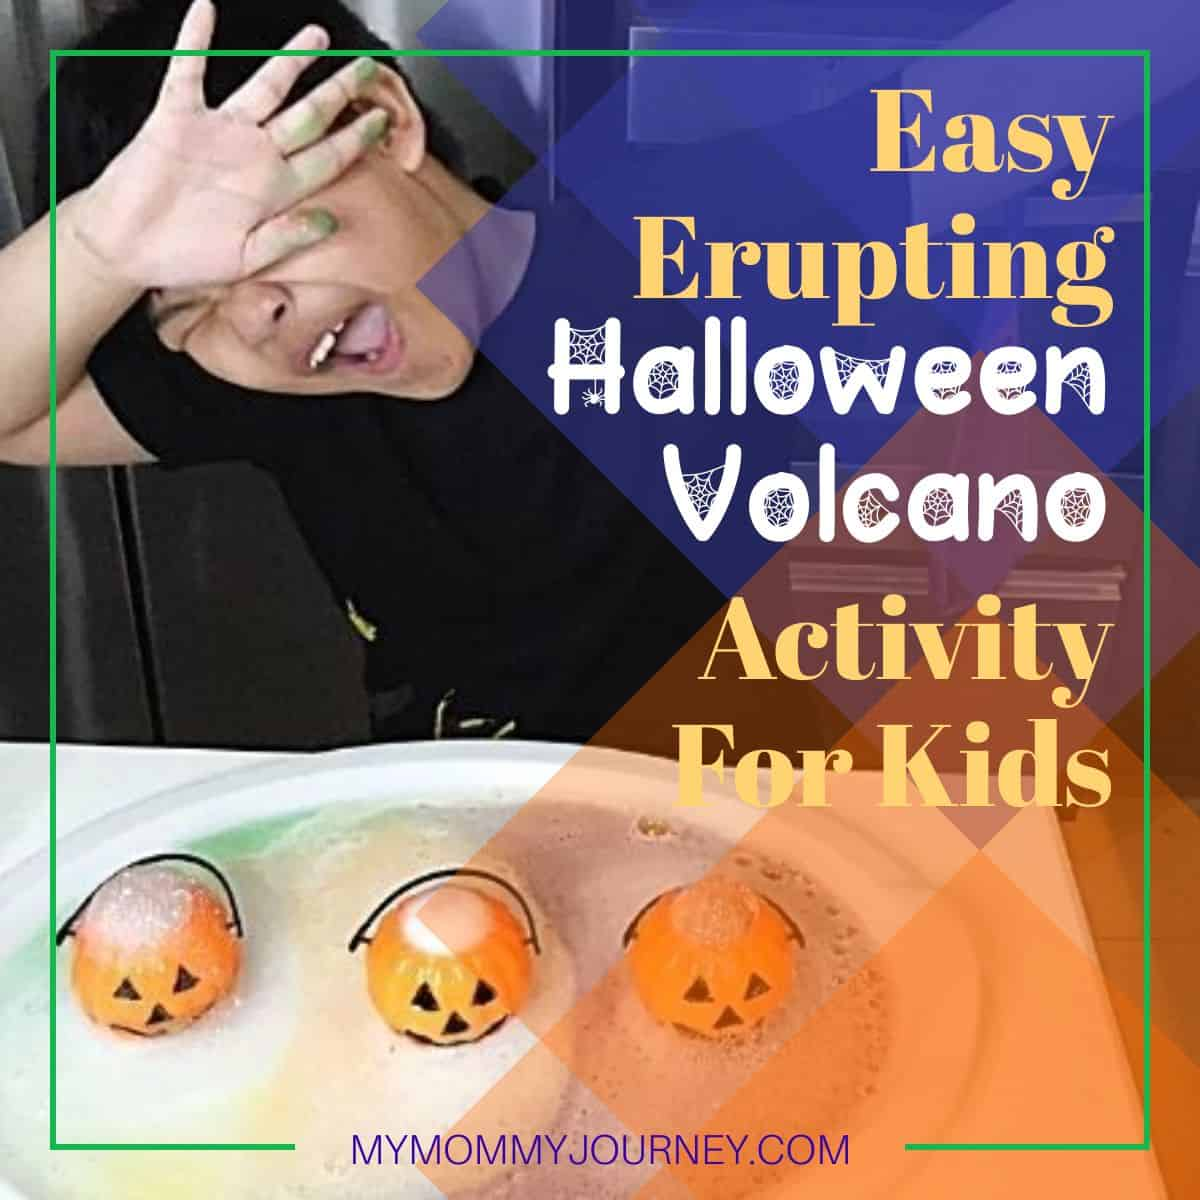 Easy Erupting Halloween Volcano Activity For Kids